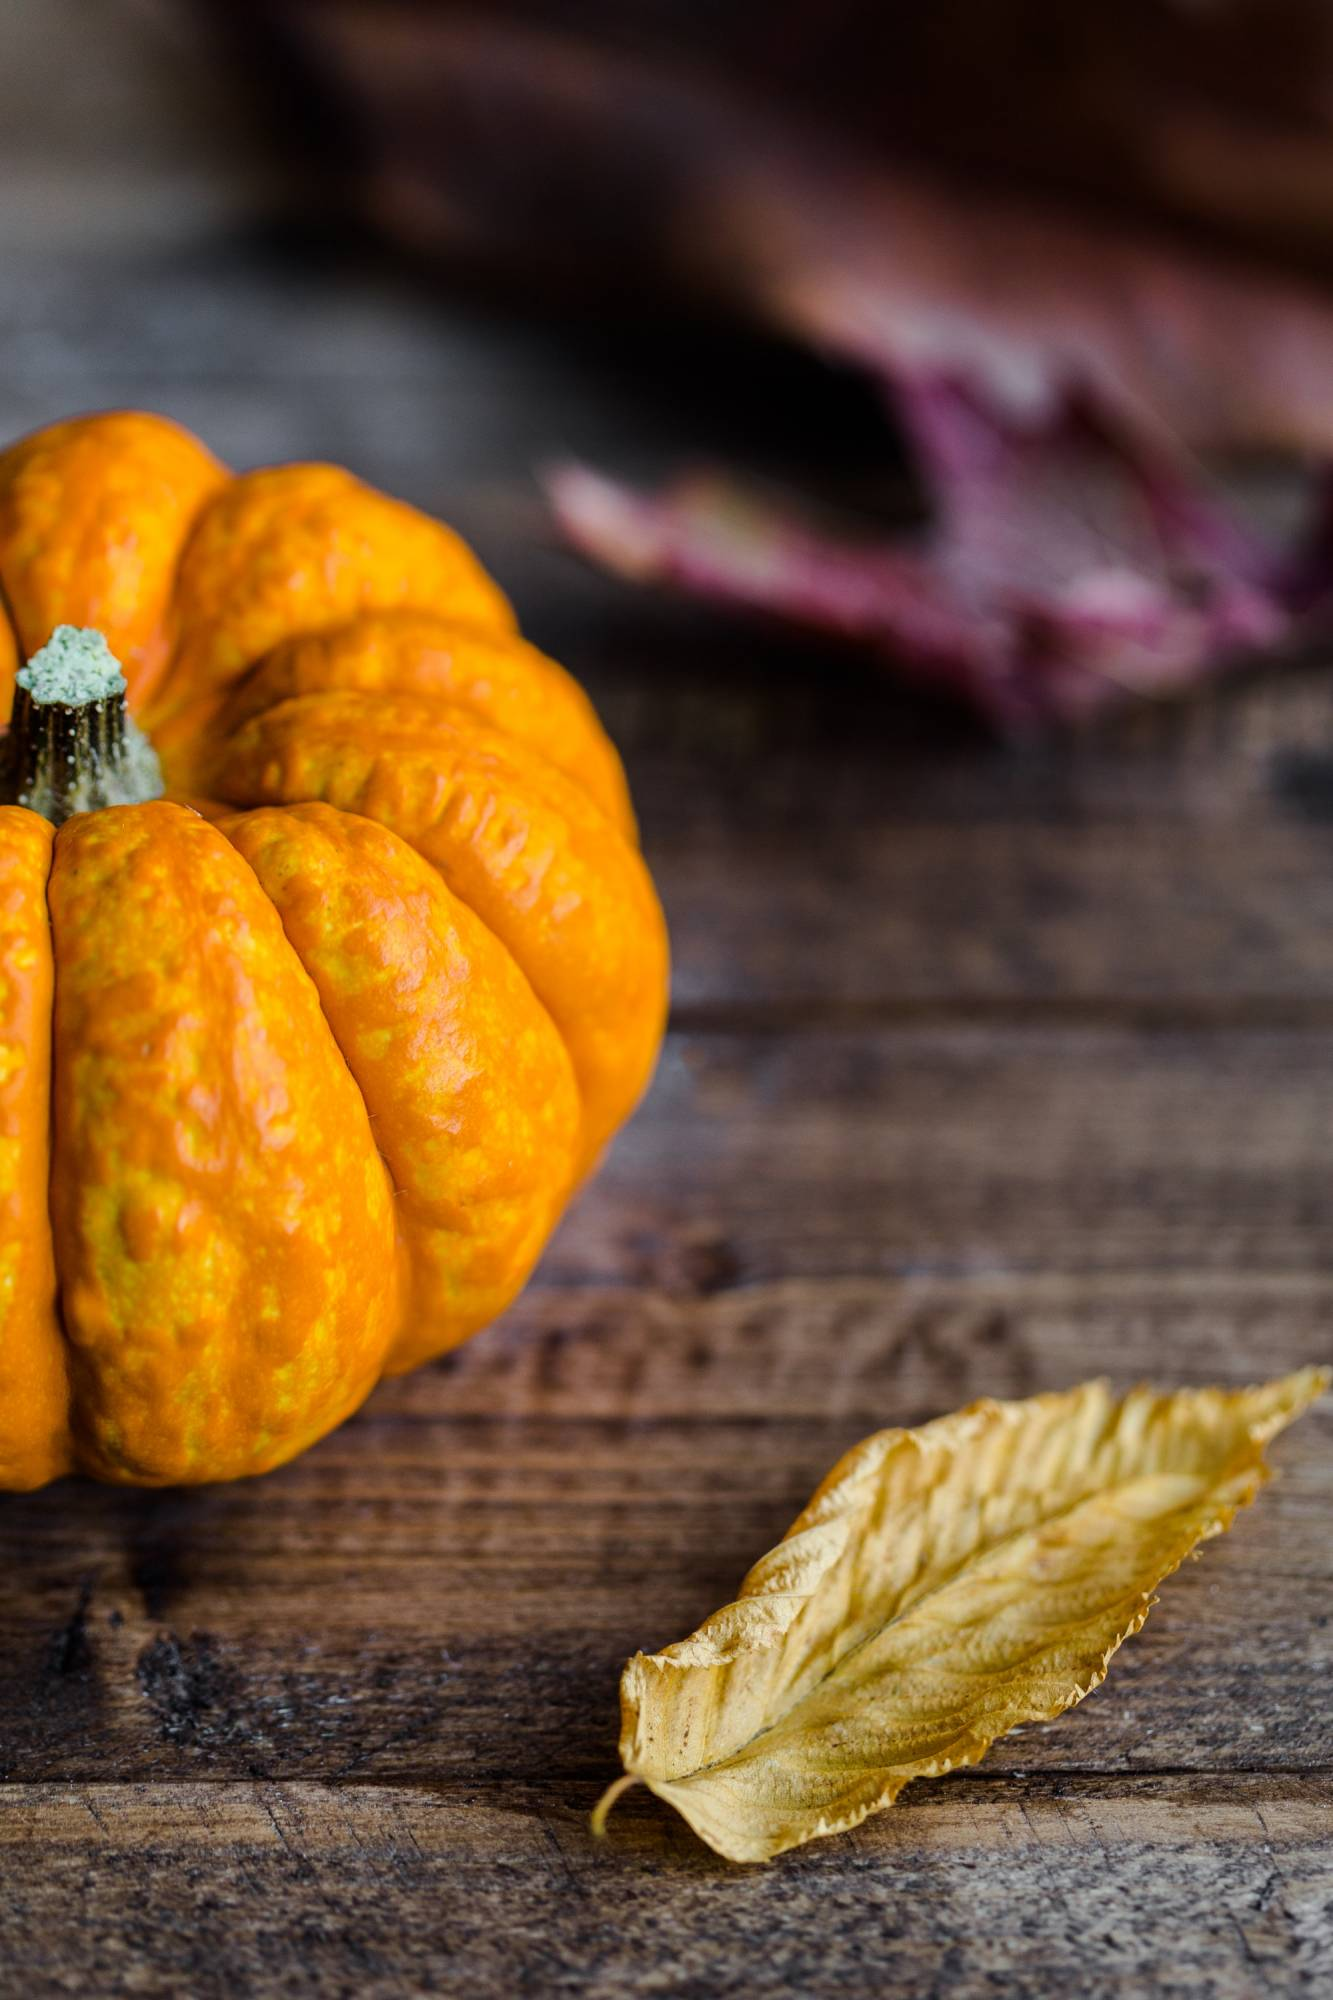 Photo of a small pumpkin on a table with leaves